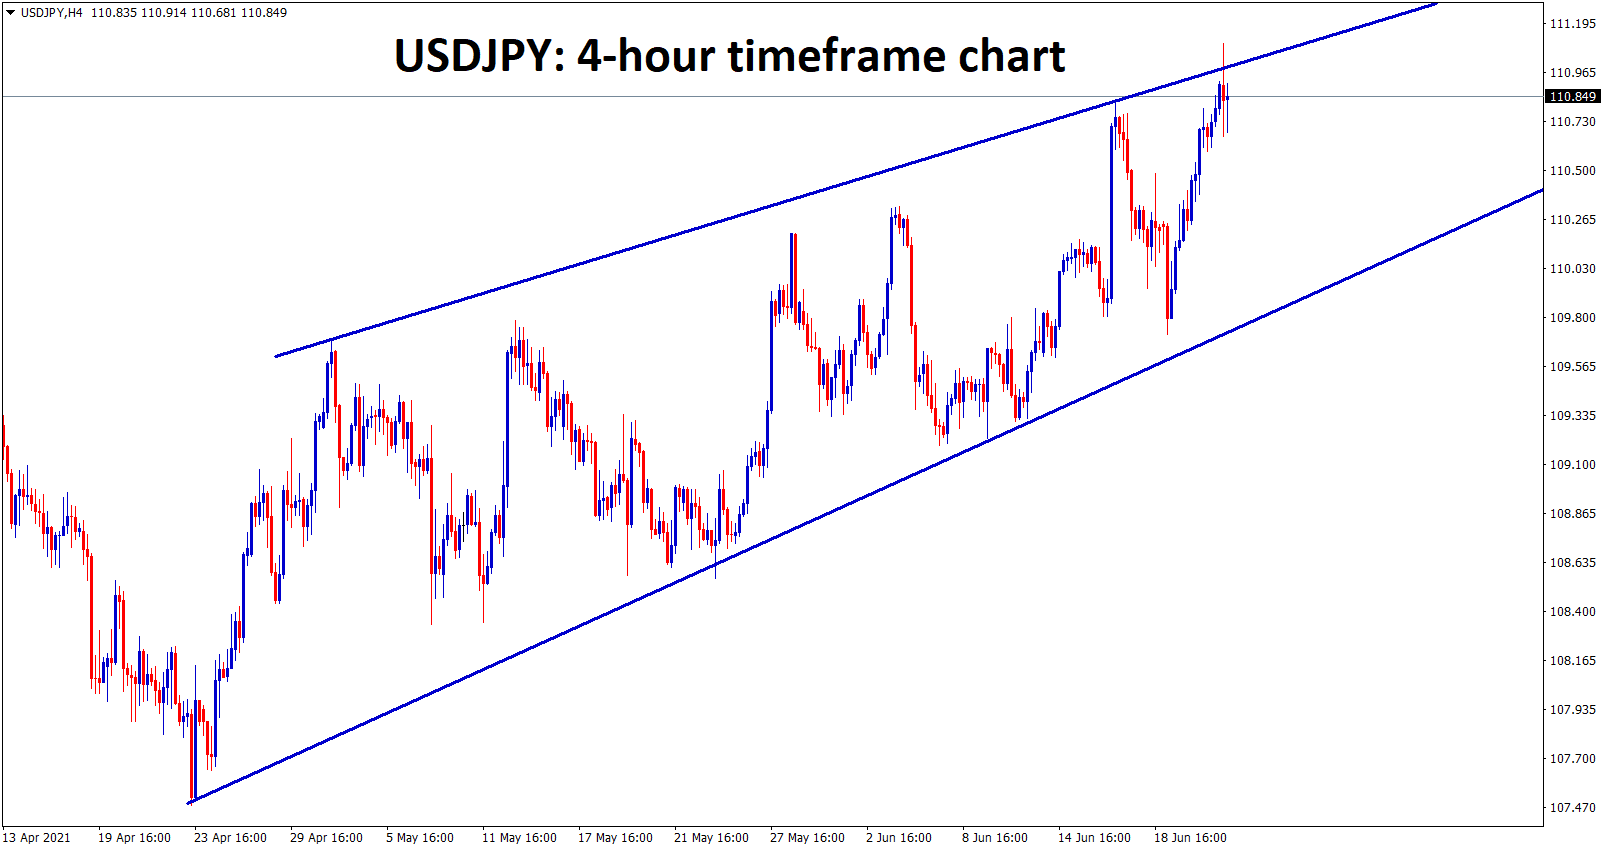 USDJPY is moving in an uptrend forming a wedge pattern